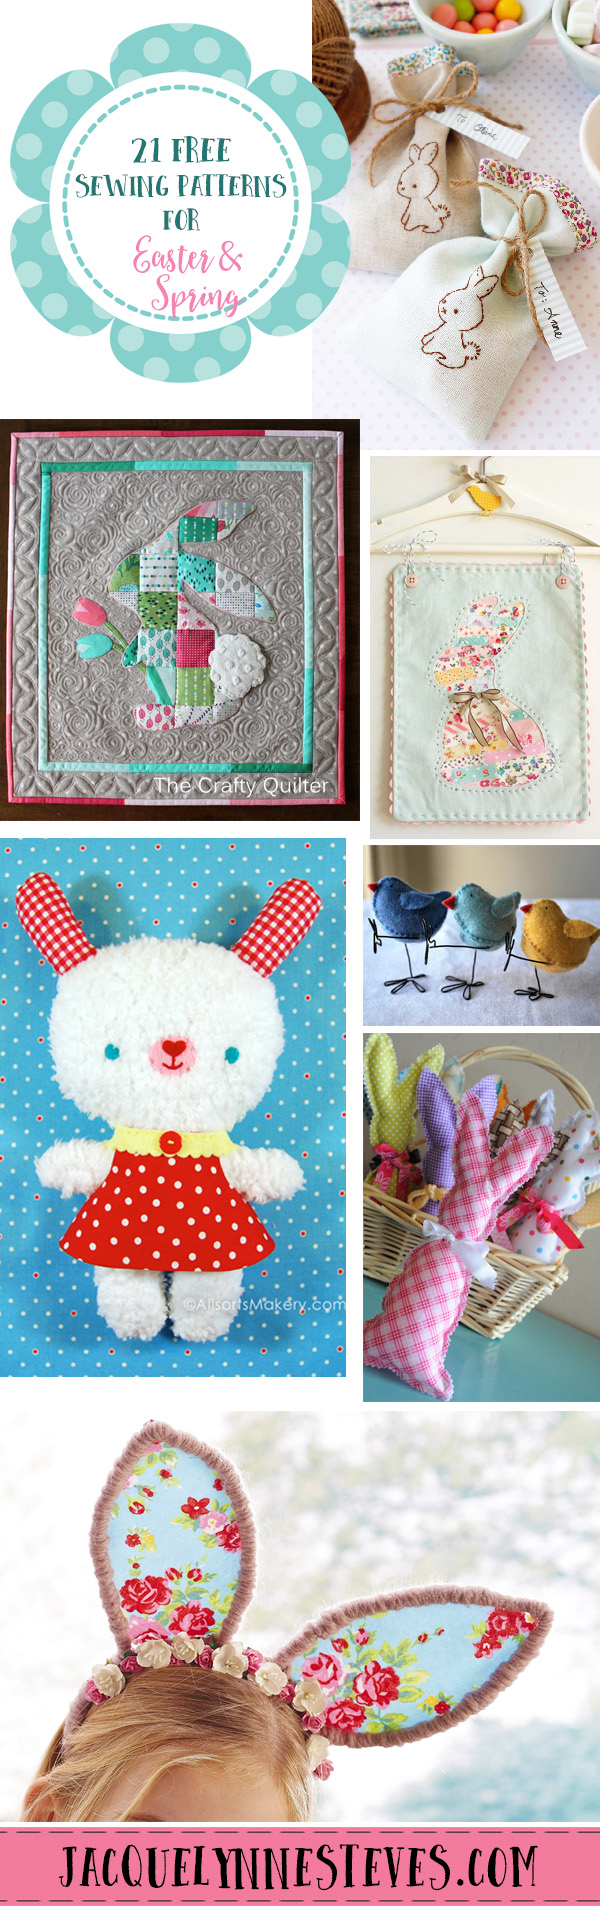 21 Free Sewing Patterns for Easter & Spring